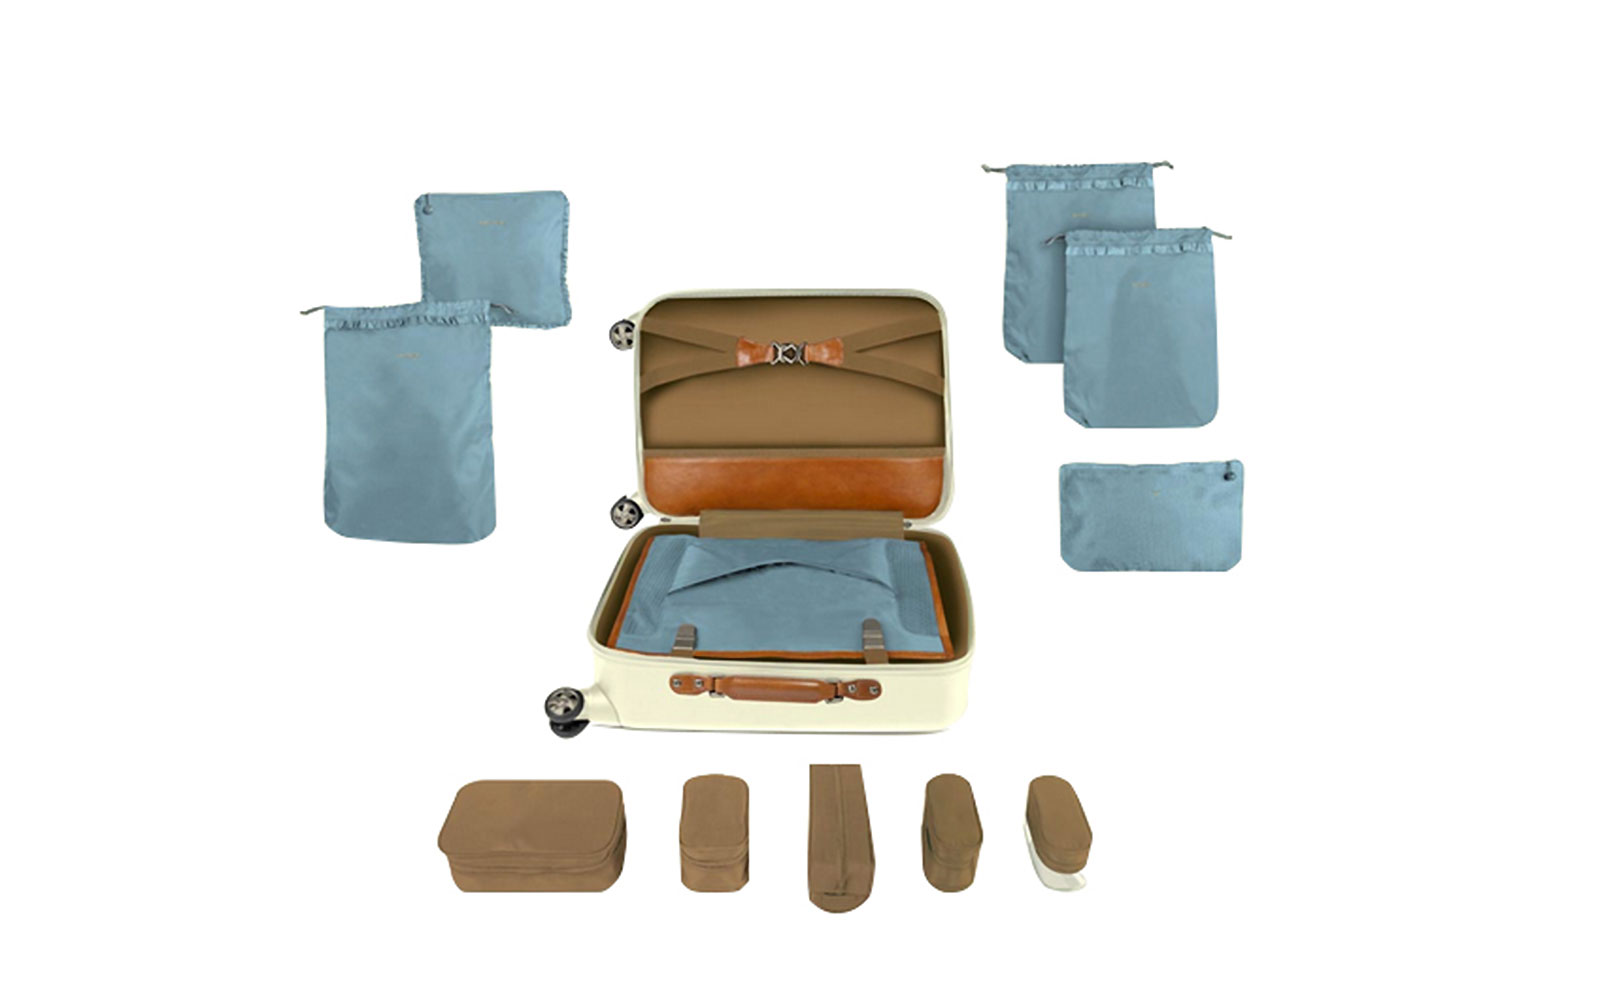 Travel Wedding Gifts: The Quartermaster